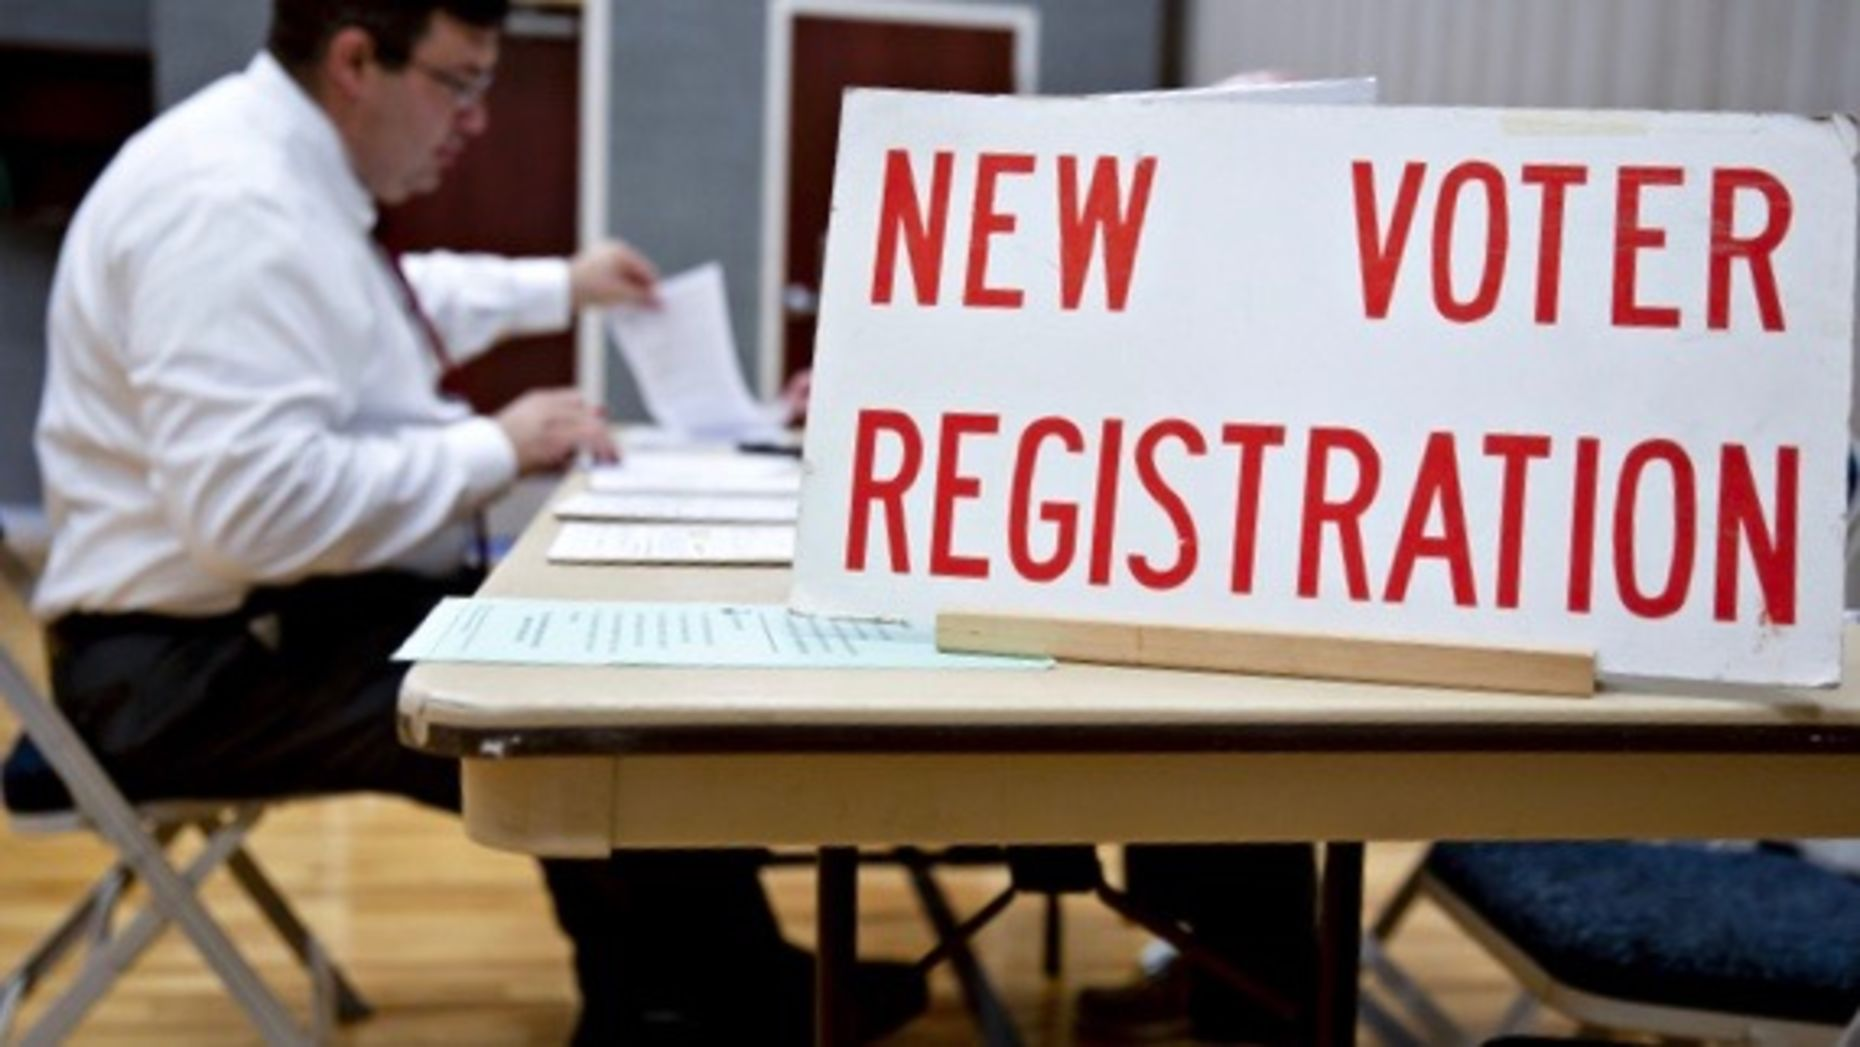 A voter registration table in Wisconsin in August. Photo by Bloomberg